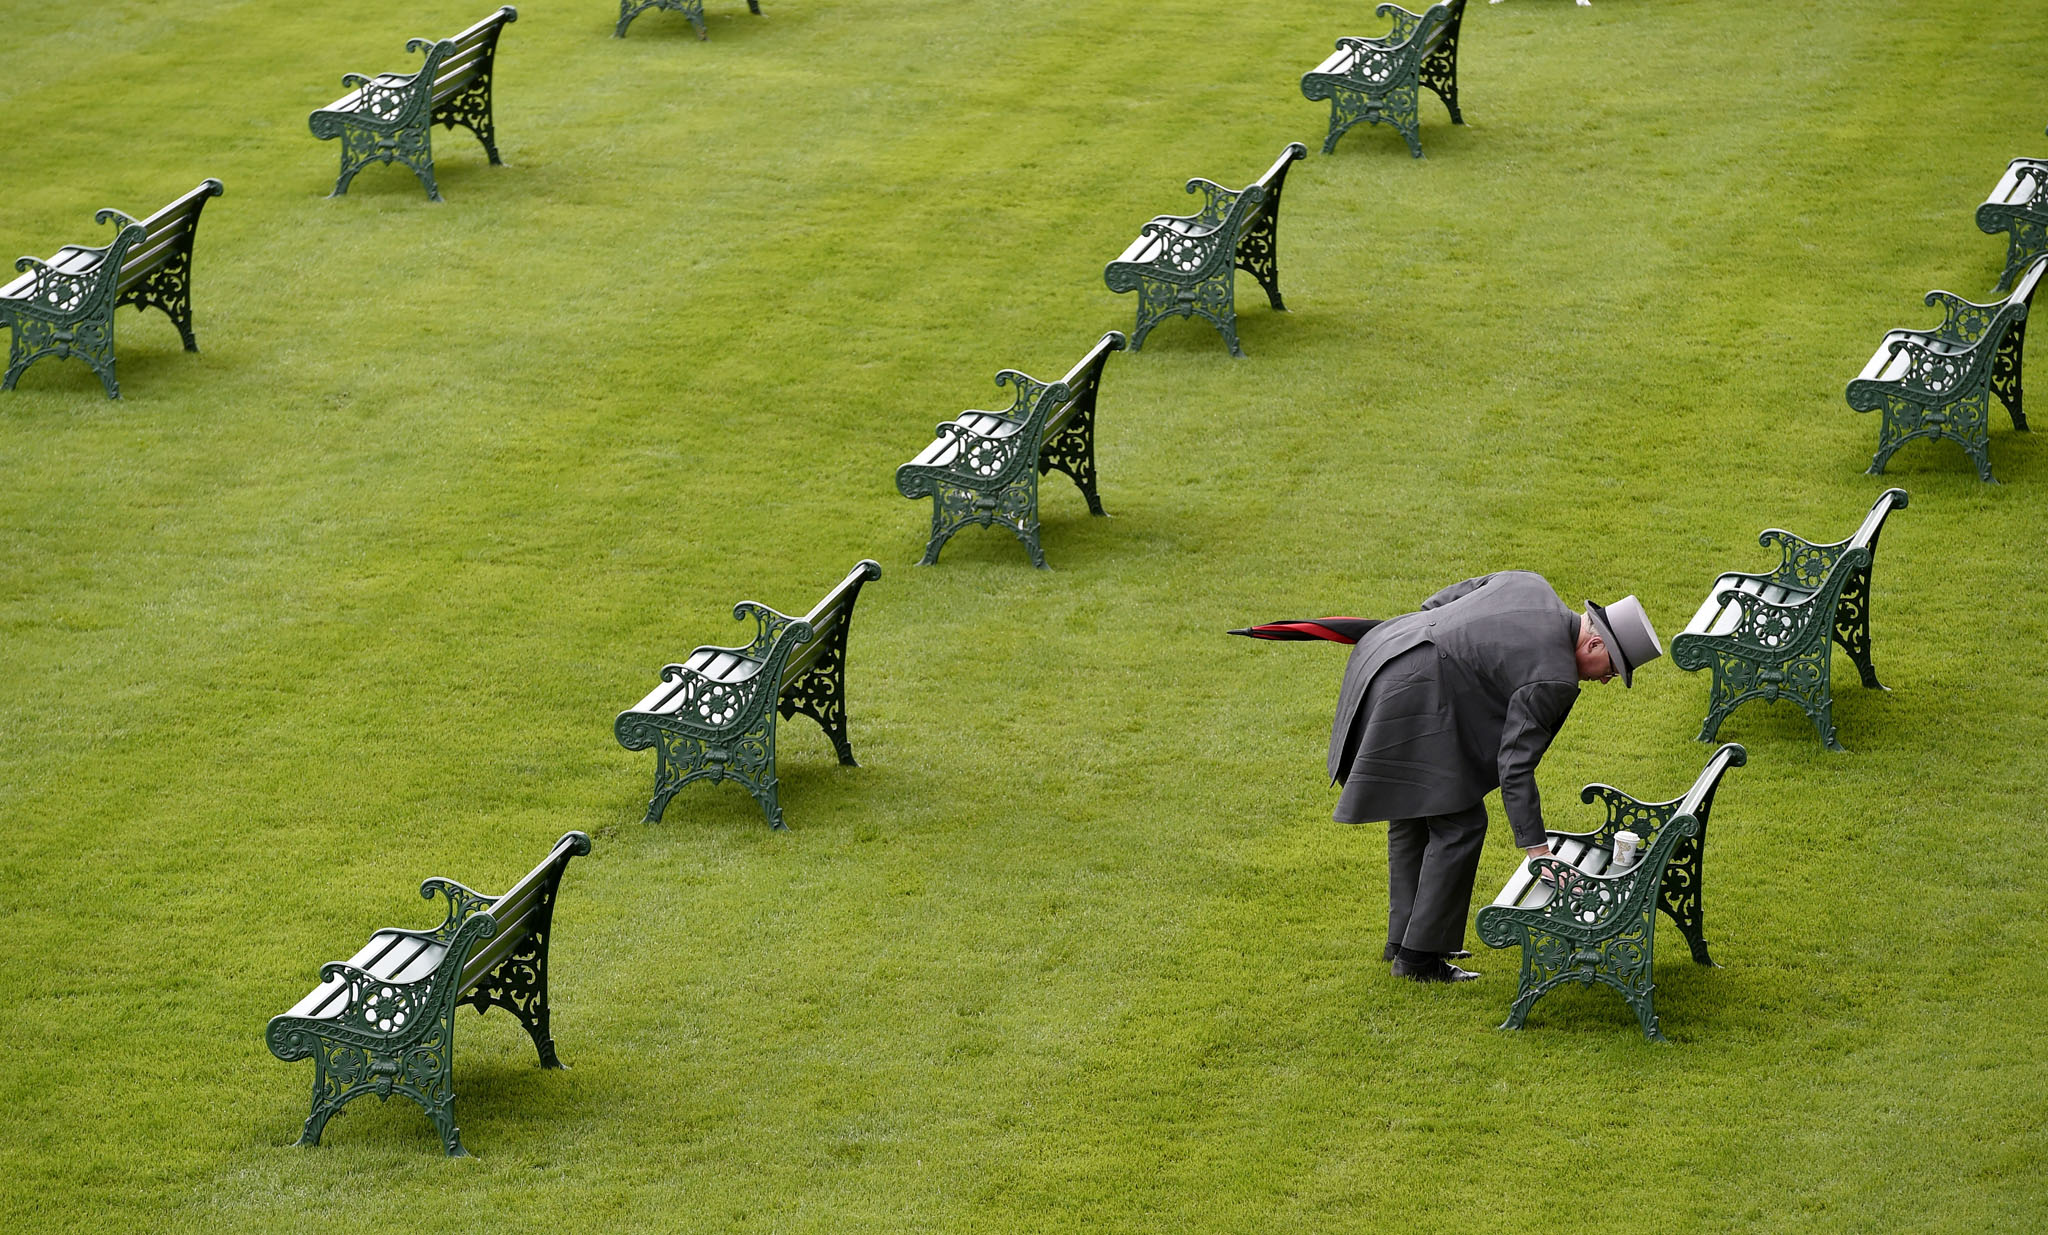 Britain Horse Racing - Royal Ascot - Ascot Racecourse - 14/6/16 General view as a racegoer wipes down a bench before sitting on it before the races begin Reuters / Toby Melville Livepic EDITORIAL USE ONLY.